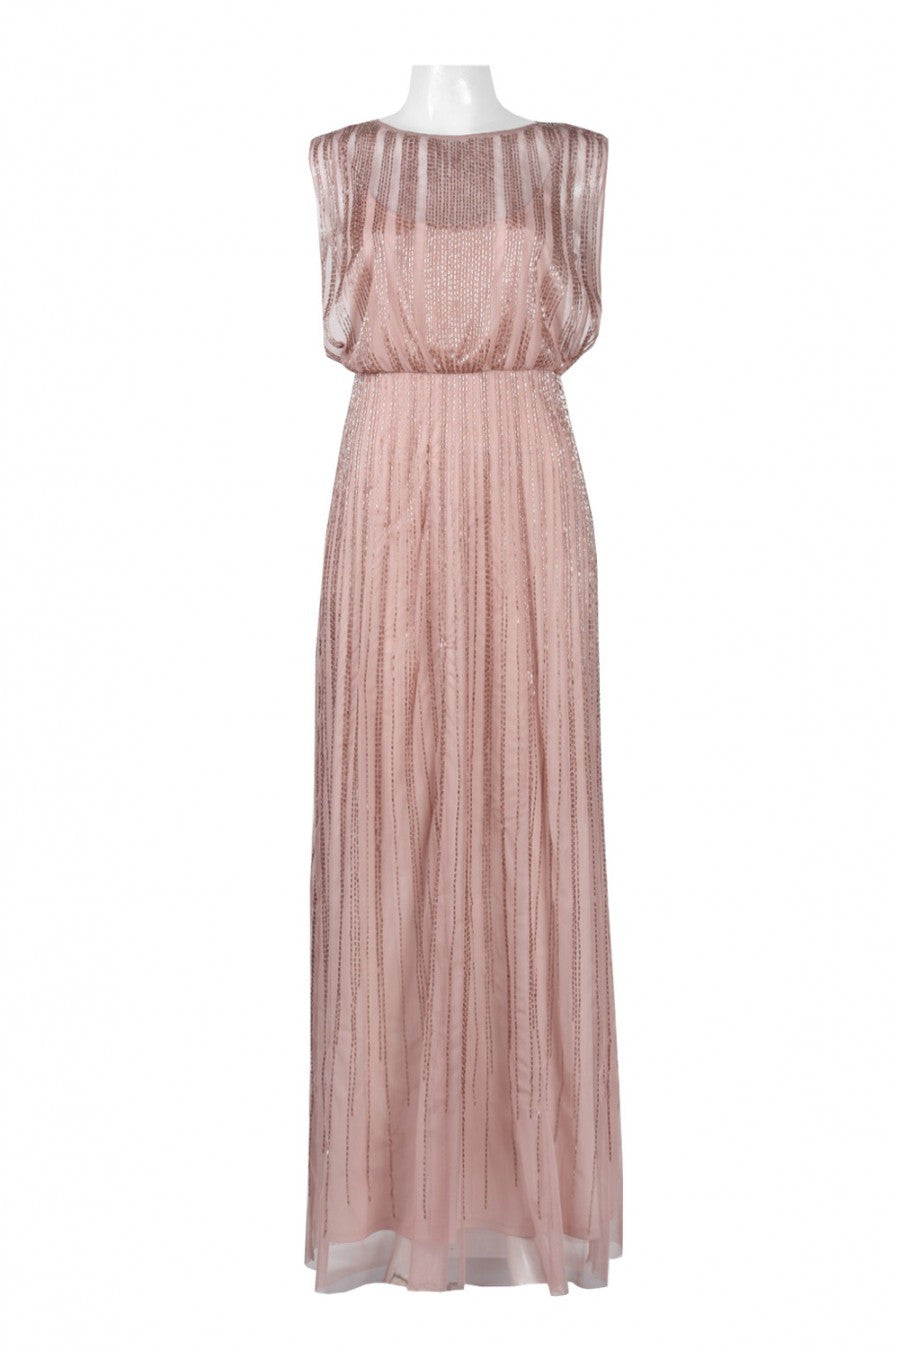 Adrianna Papell Beaded Mesh Blouson Gown - Rose Gold - Adinas Bridal